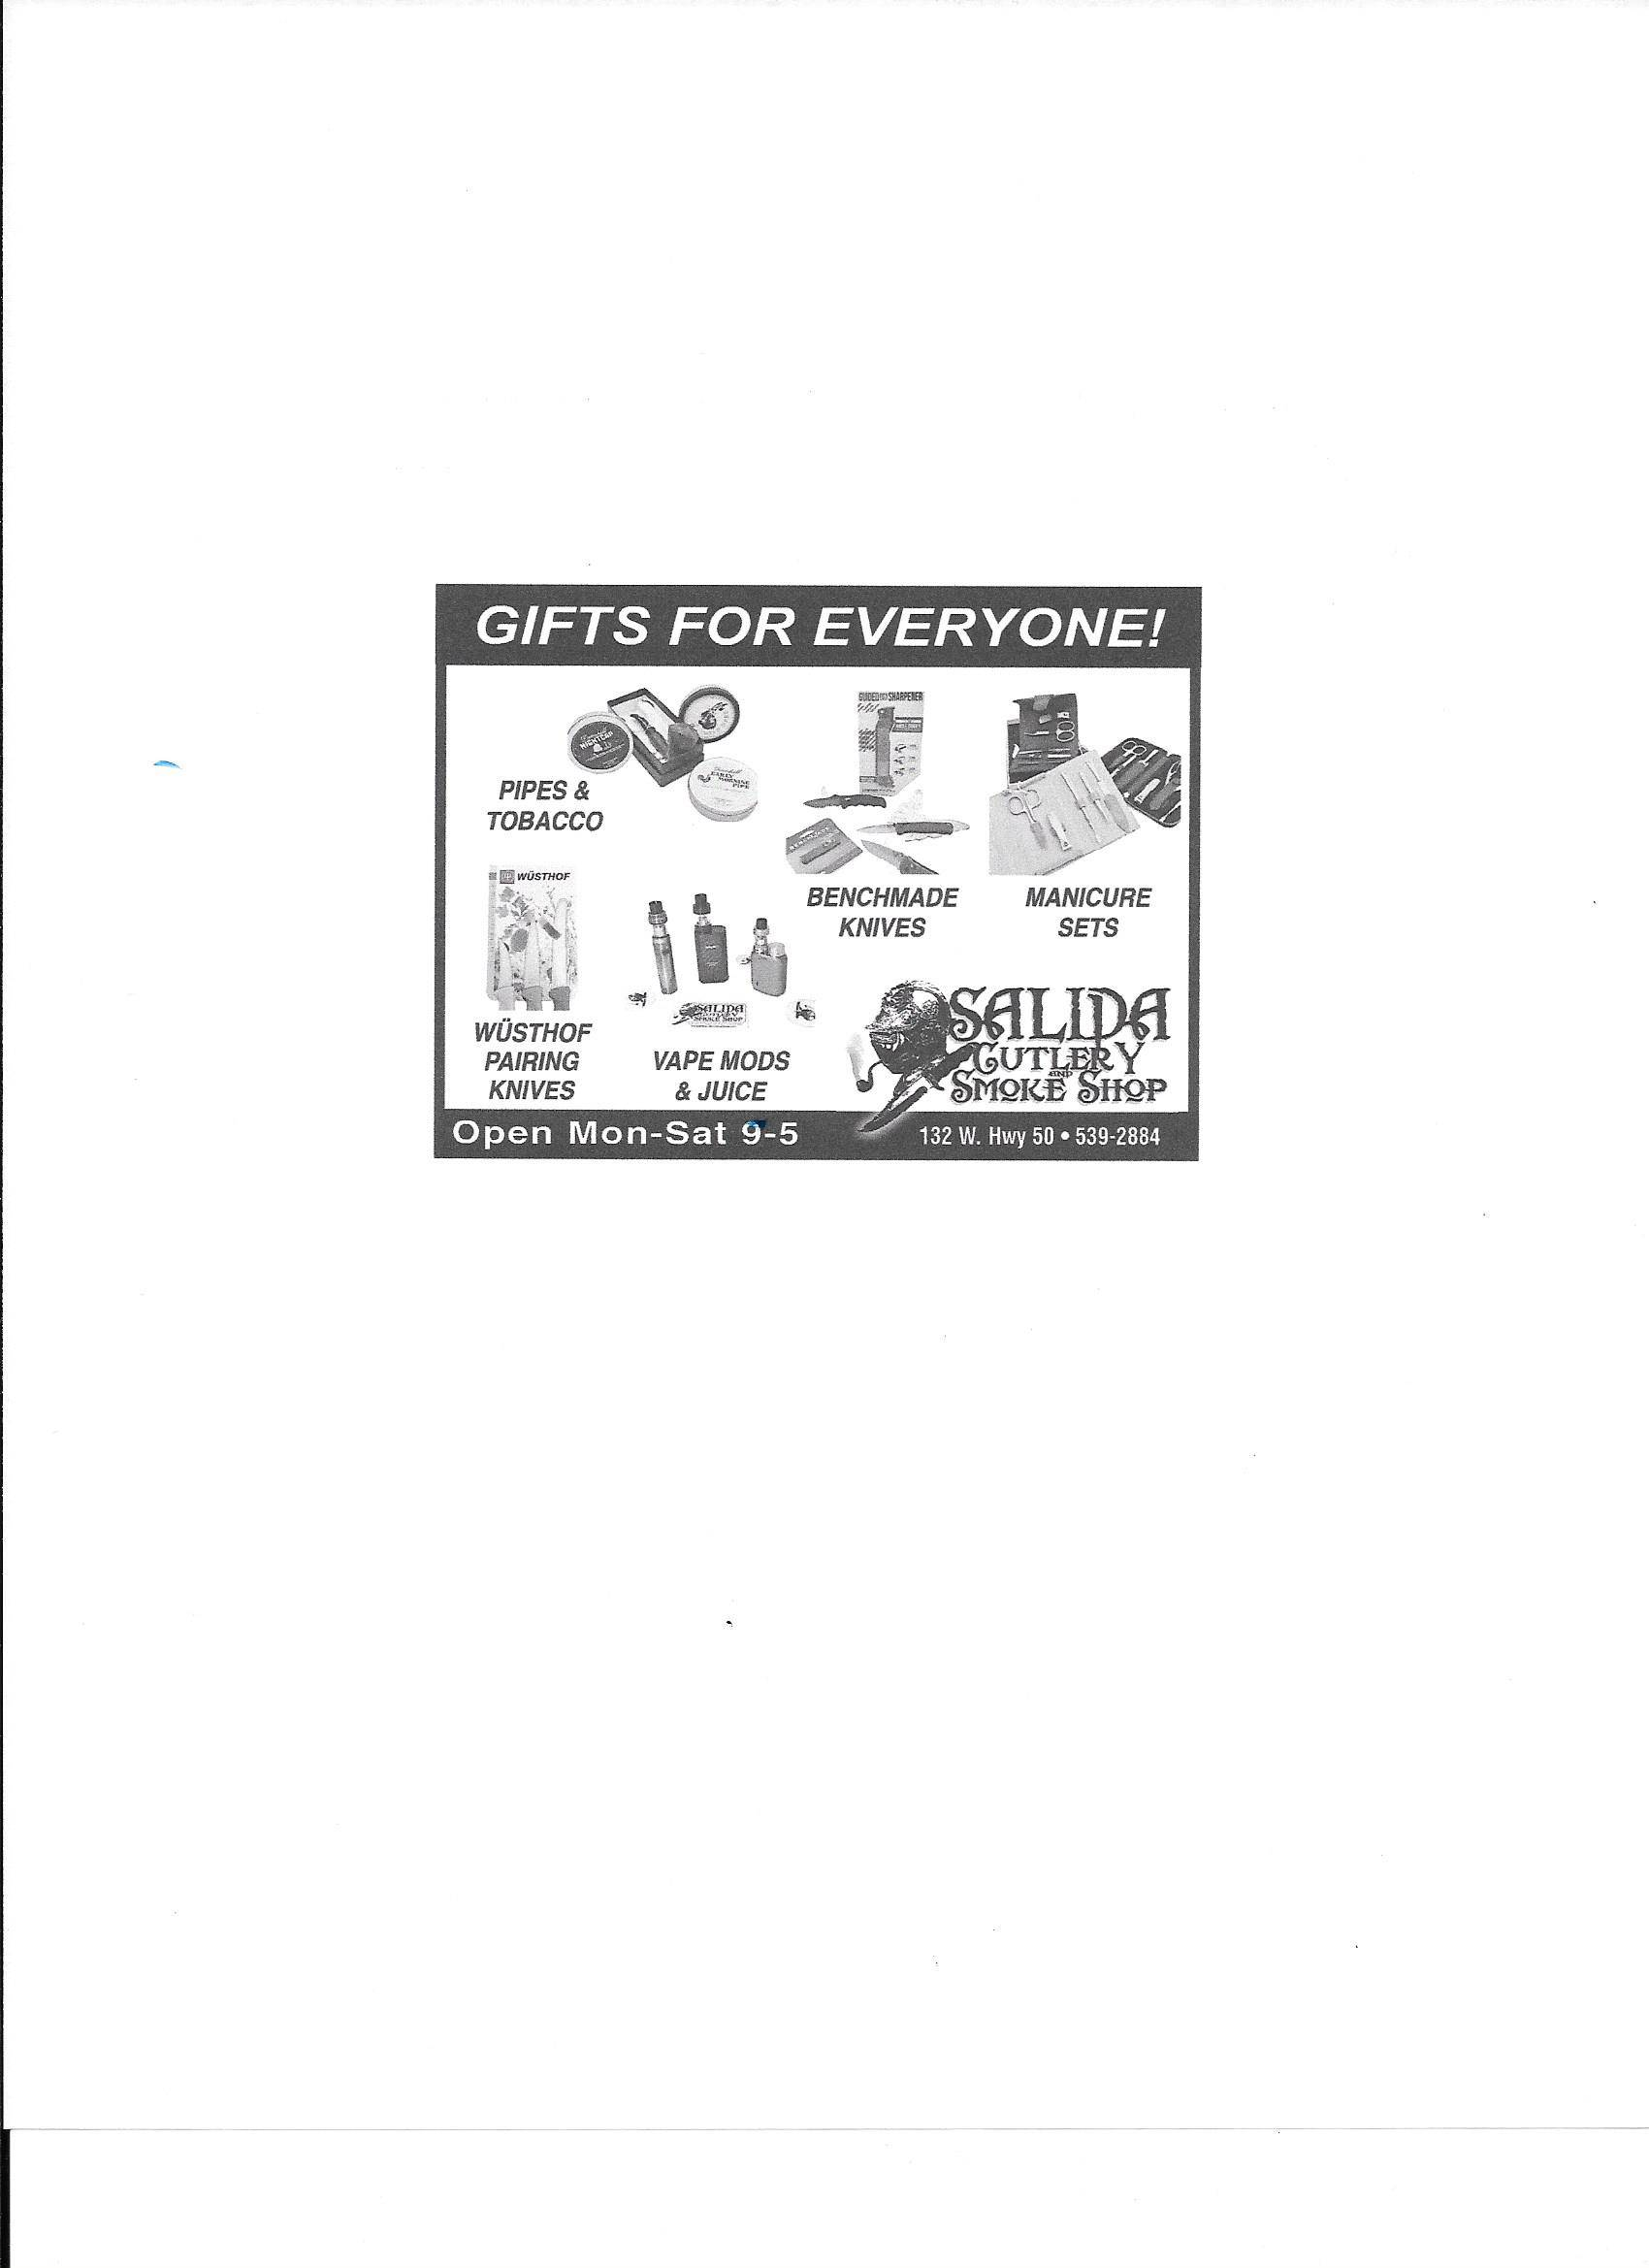 Gifts for Everyone! Get some ideas here.